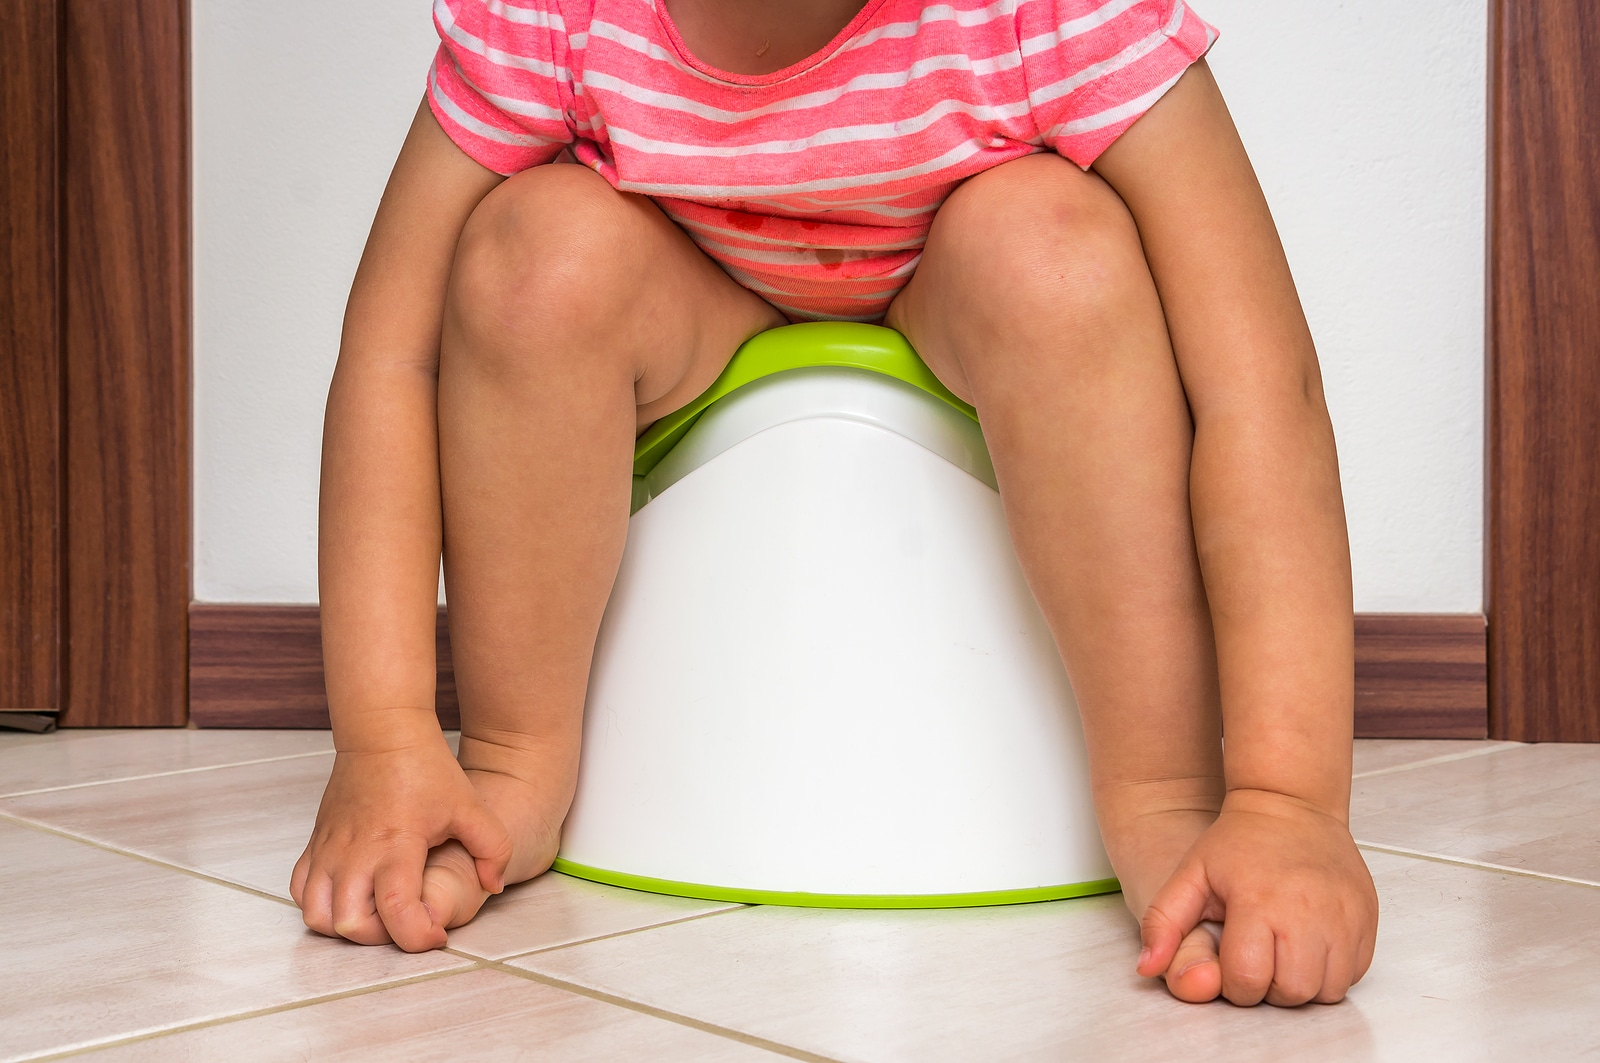 Ready to Ditch Those Diapers? | Potty Training Tips and Tricks